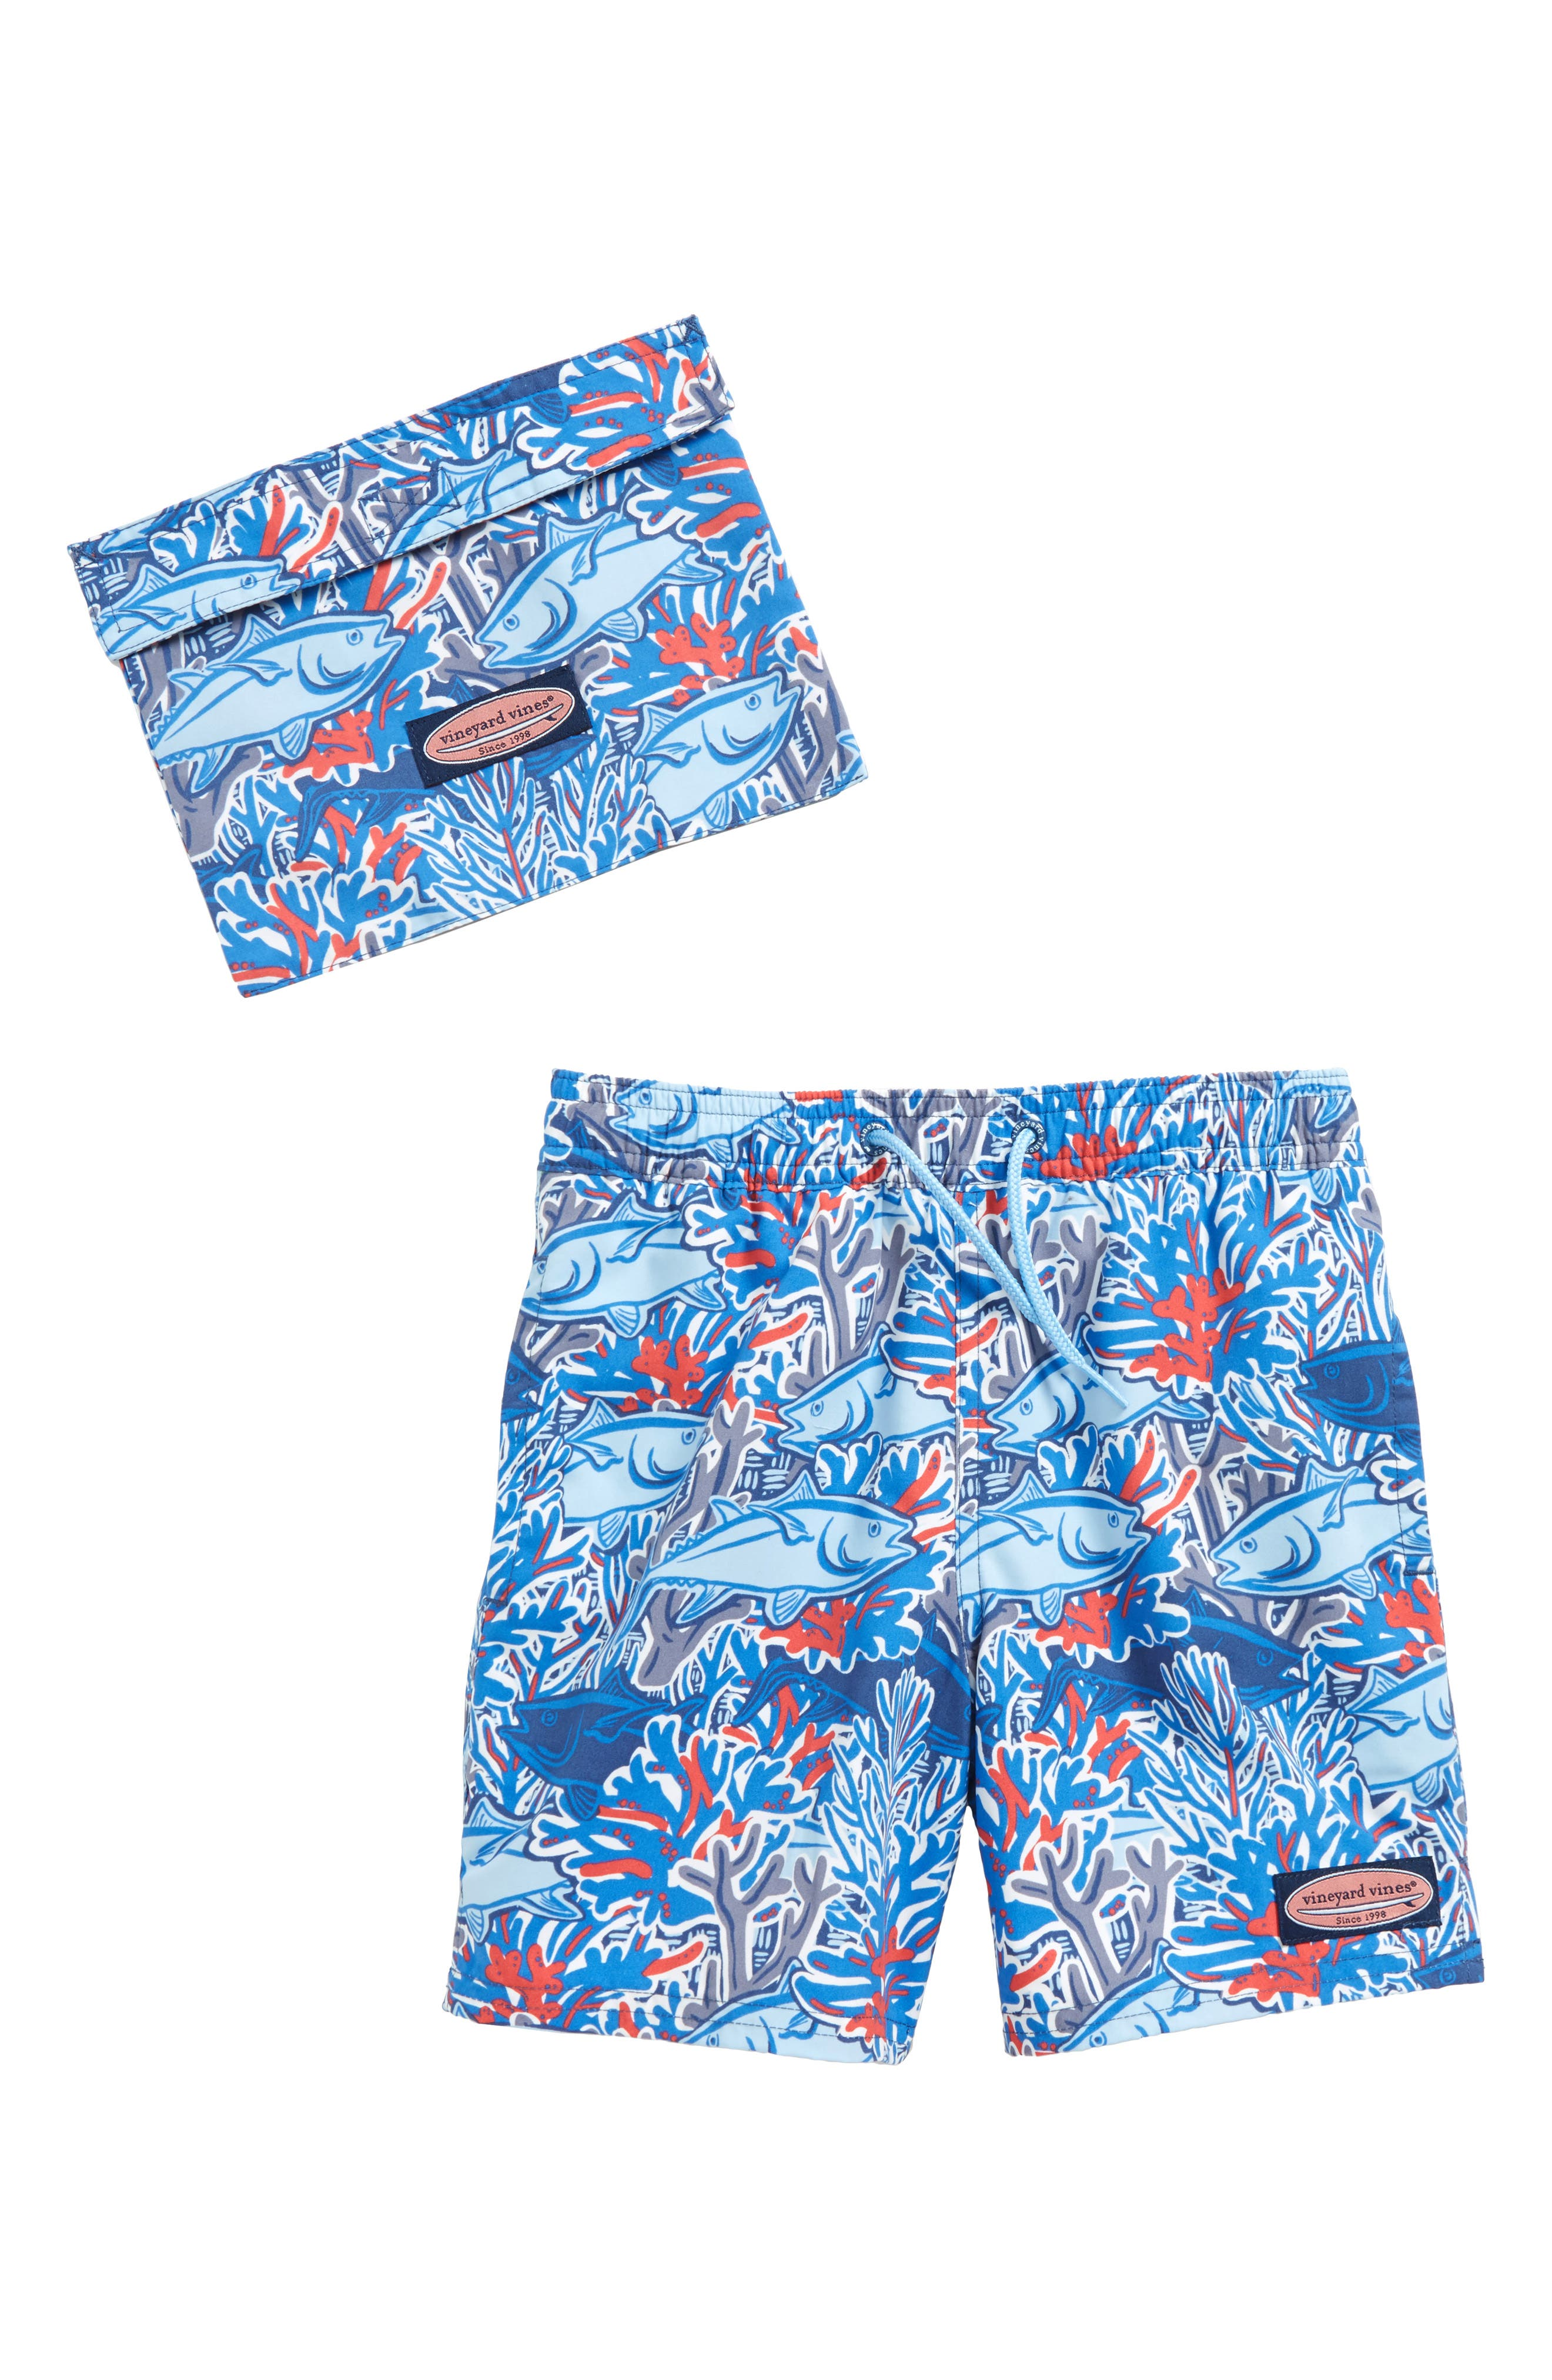 Chappy Tuna in Coral Swim Trunks,                         Main,                         color,